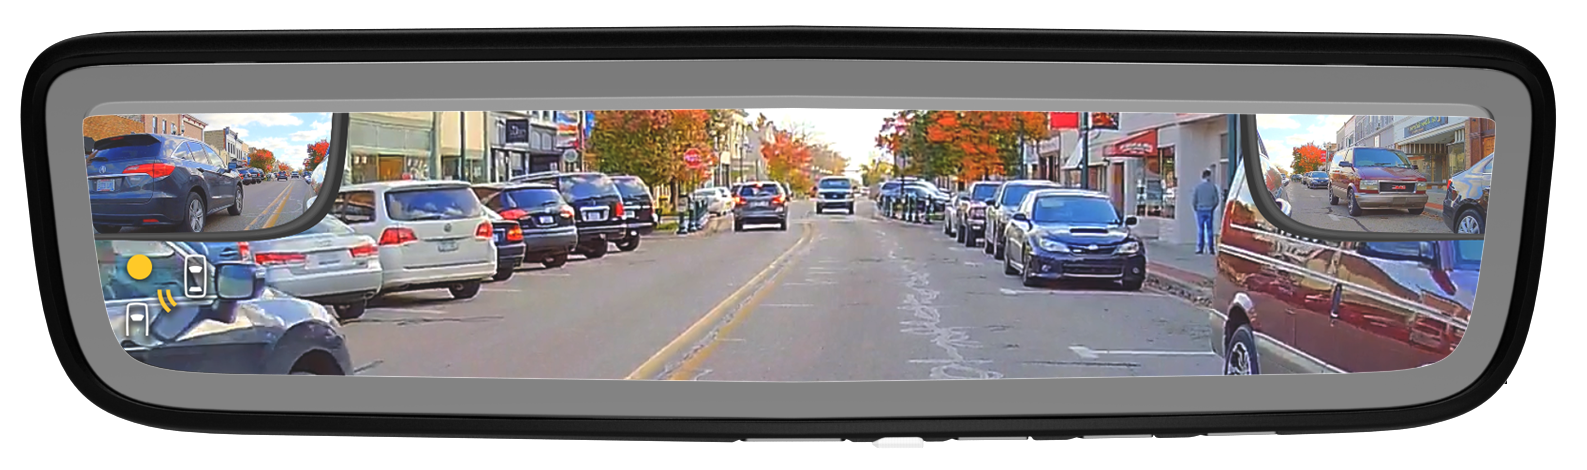 Gentex CMS Full Display Mirror